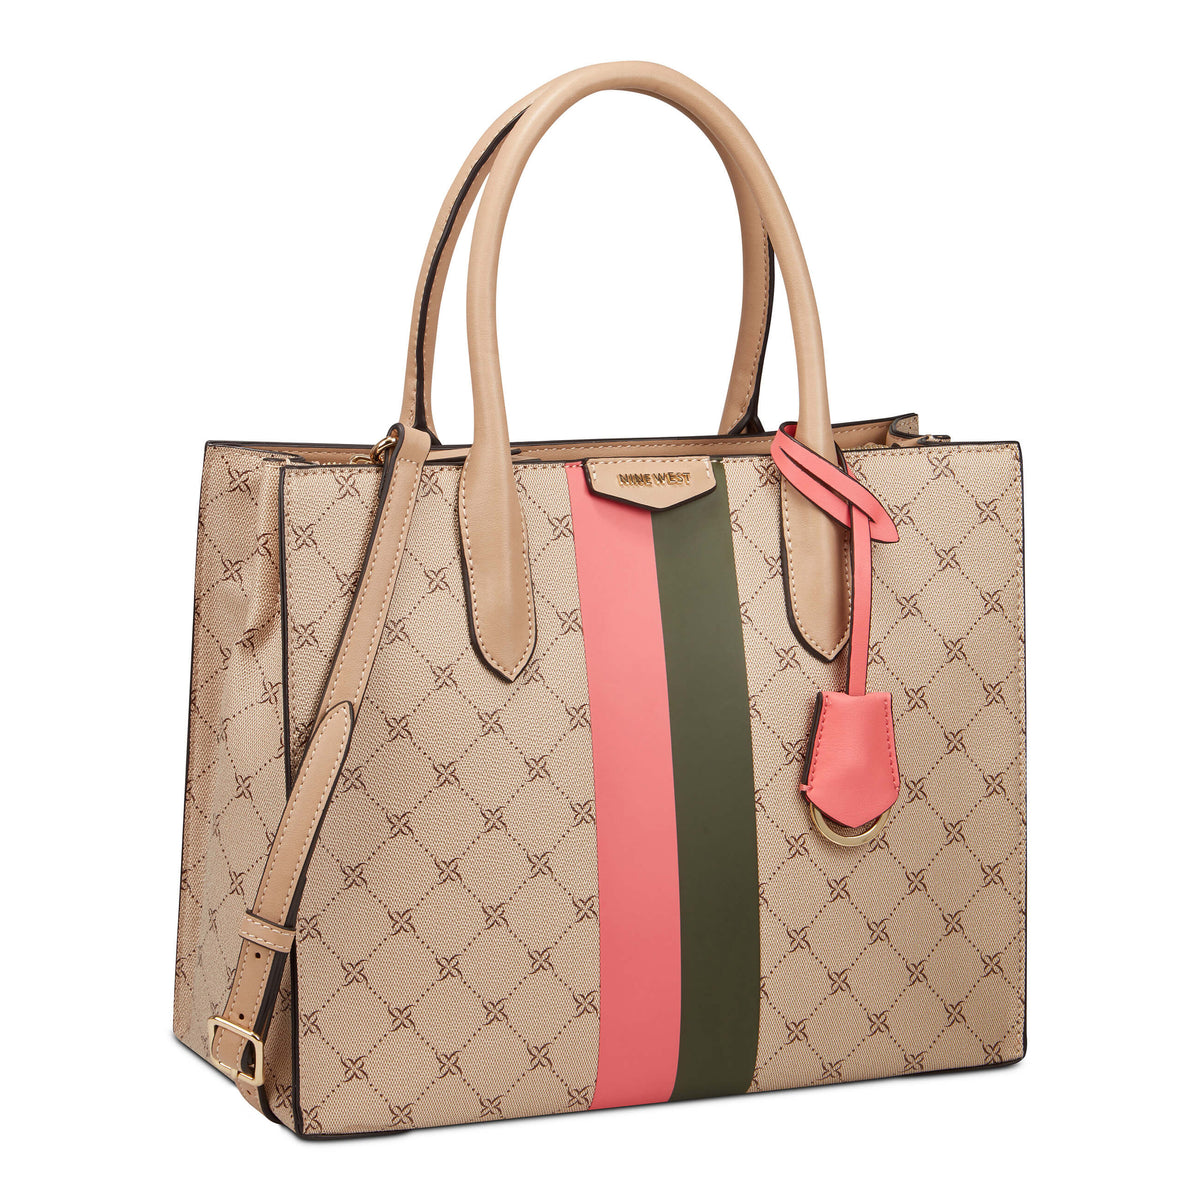 Luella Jet Set Shopper